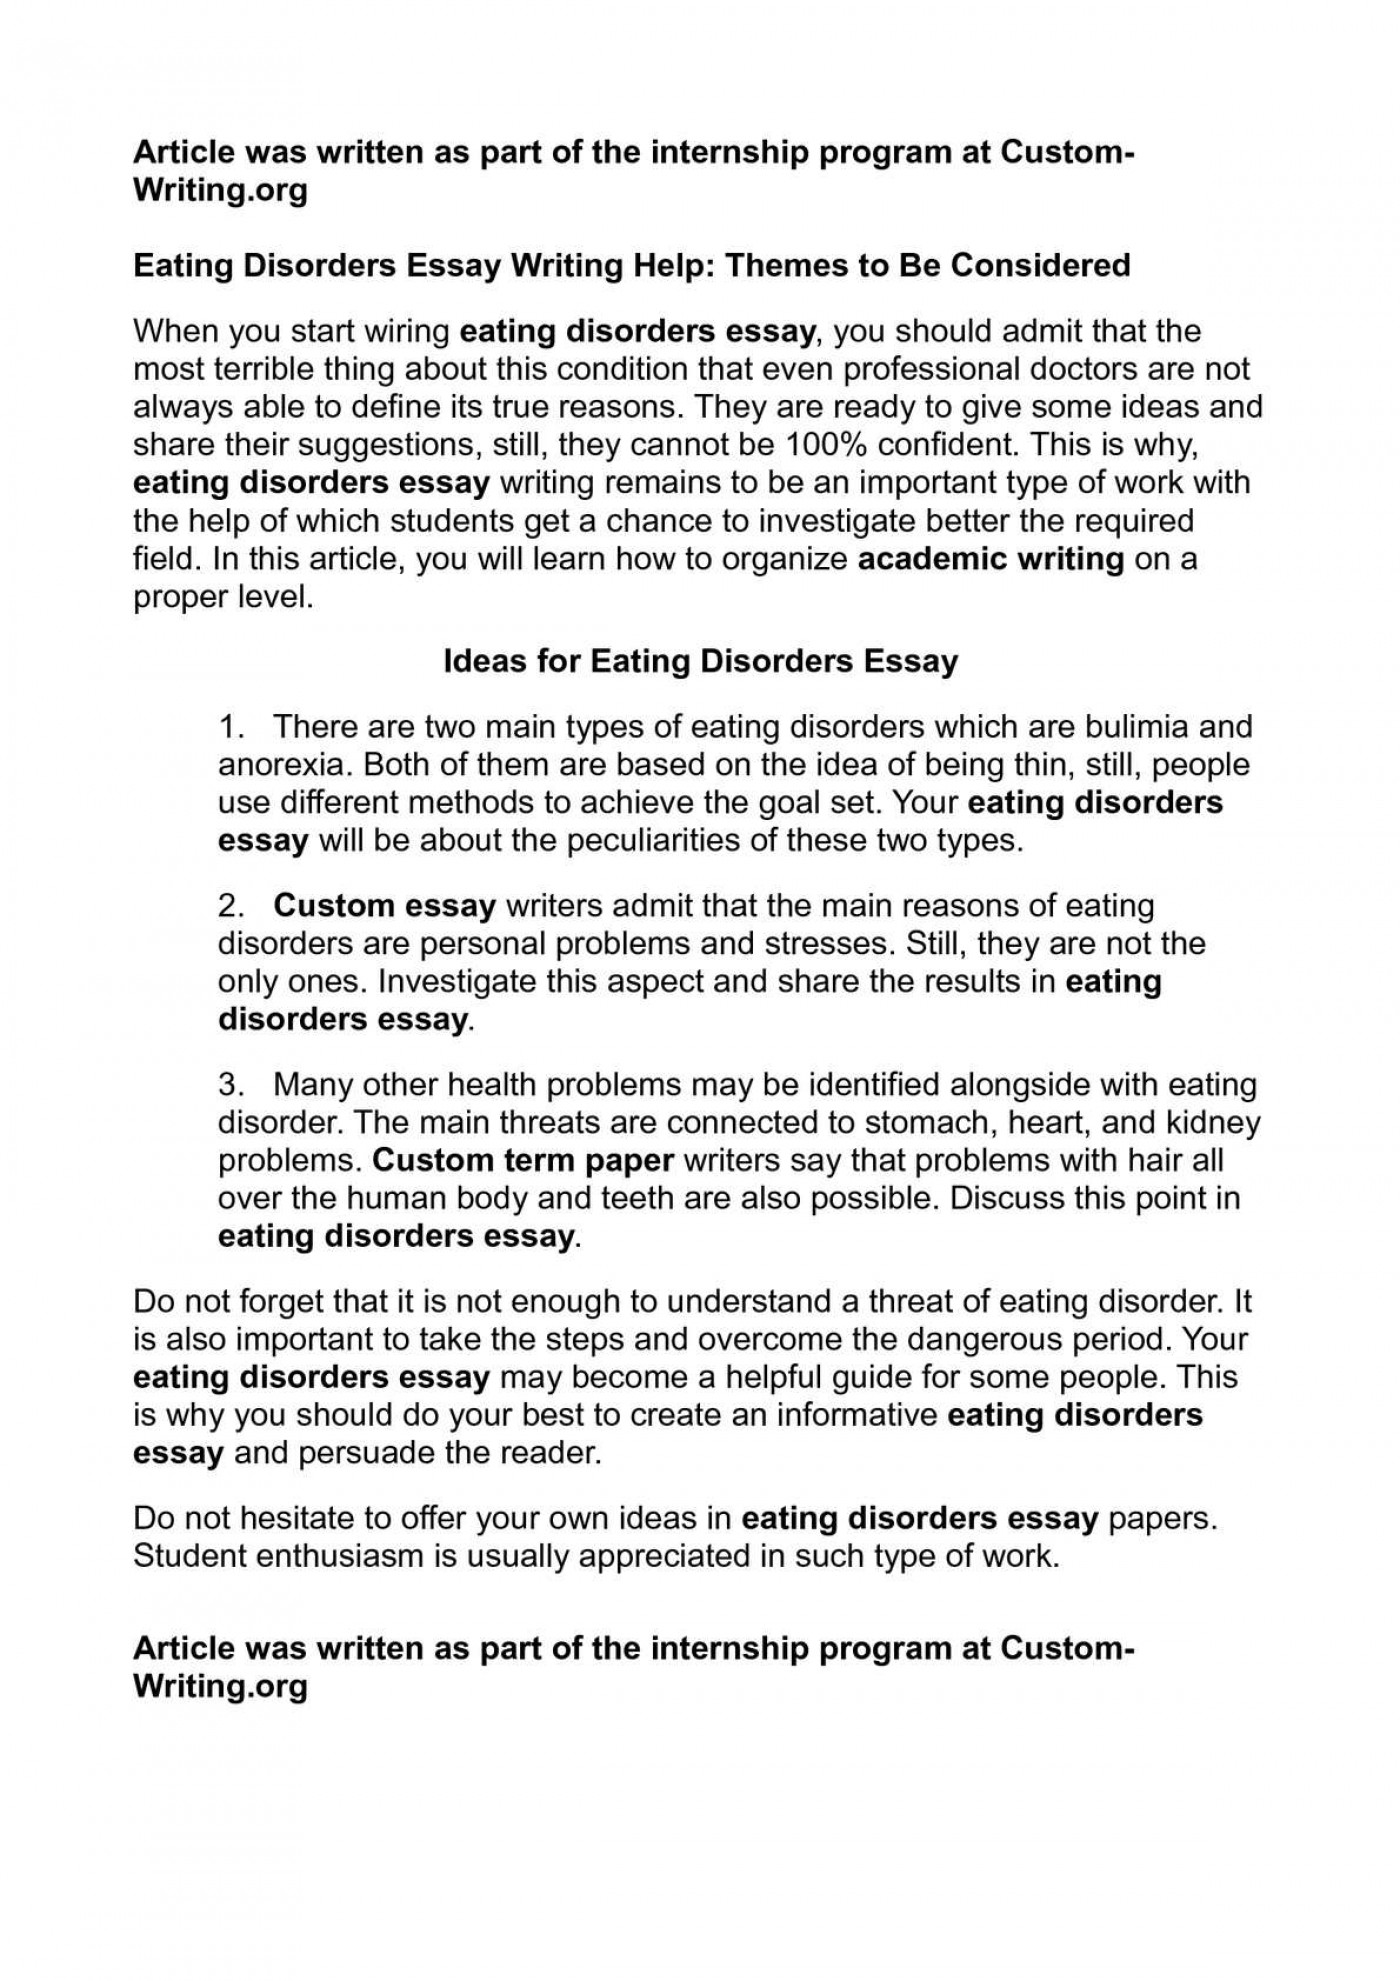 Employee privacy right essay